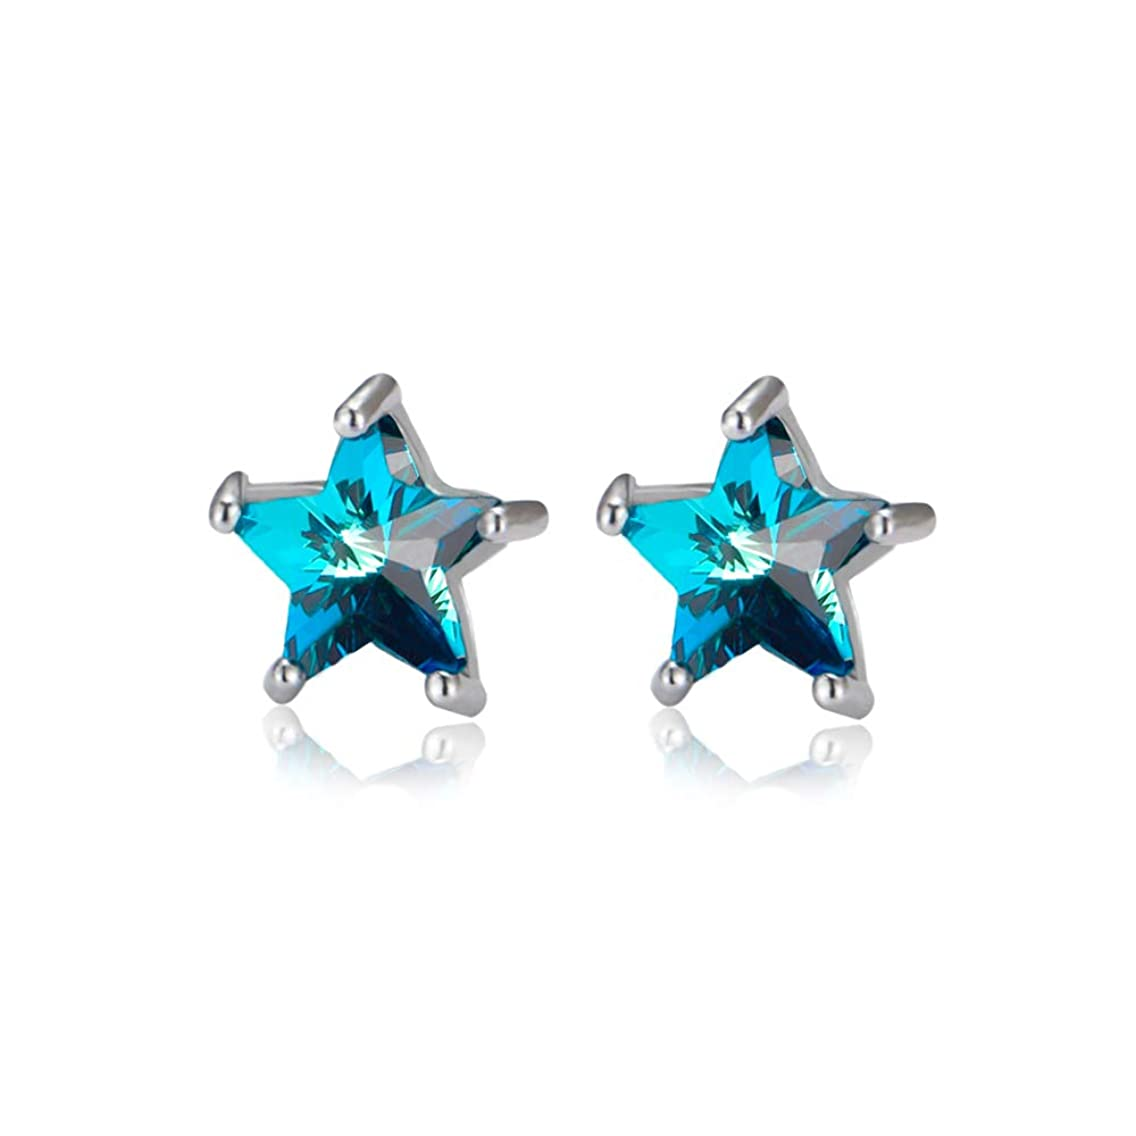 Lucky Star Cubic Zirconia Sterling Silver Stud Earrings Blue Crystal Cute Post Studs for Women Girls Nice Gift